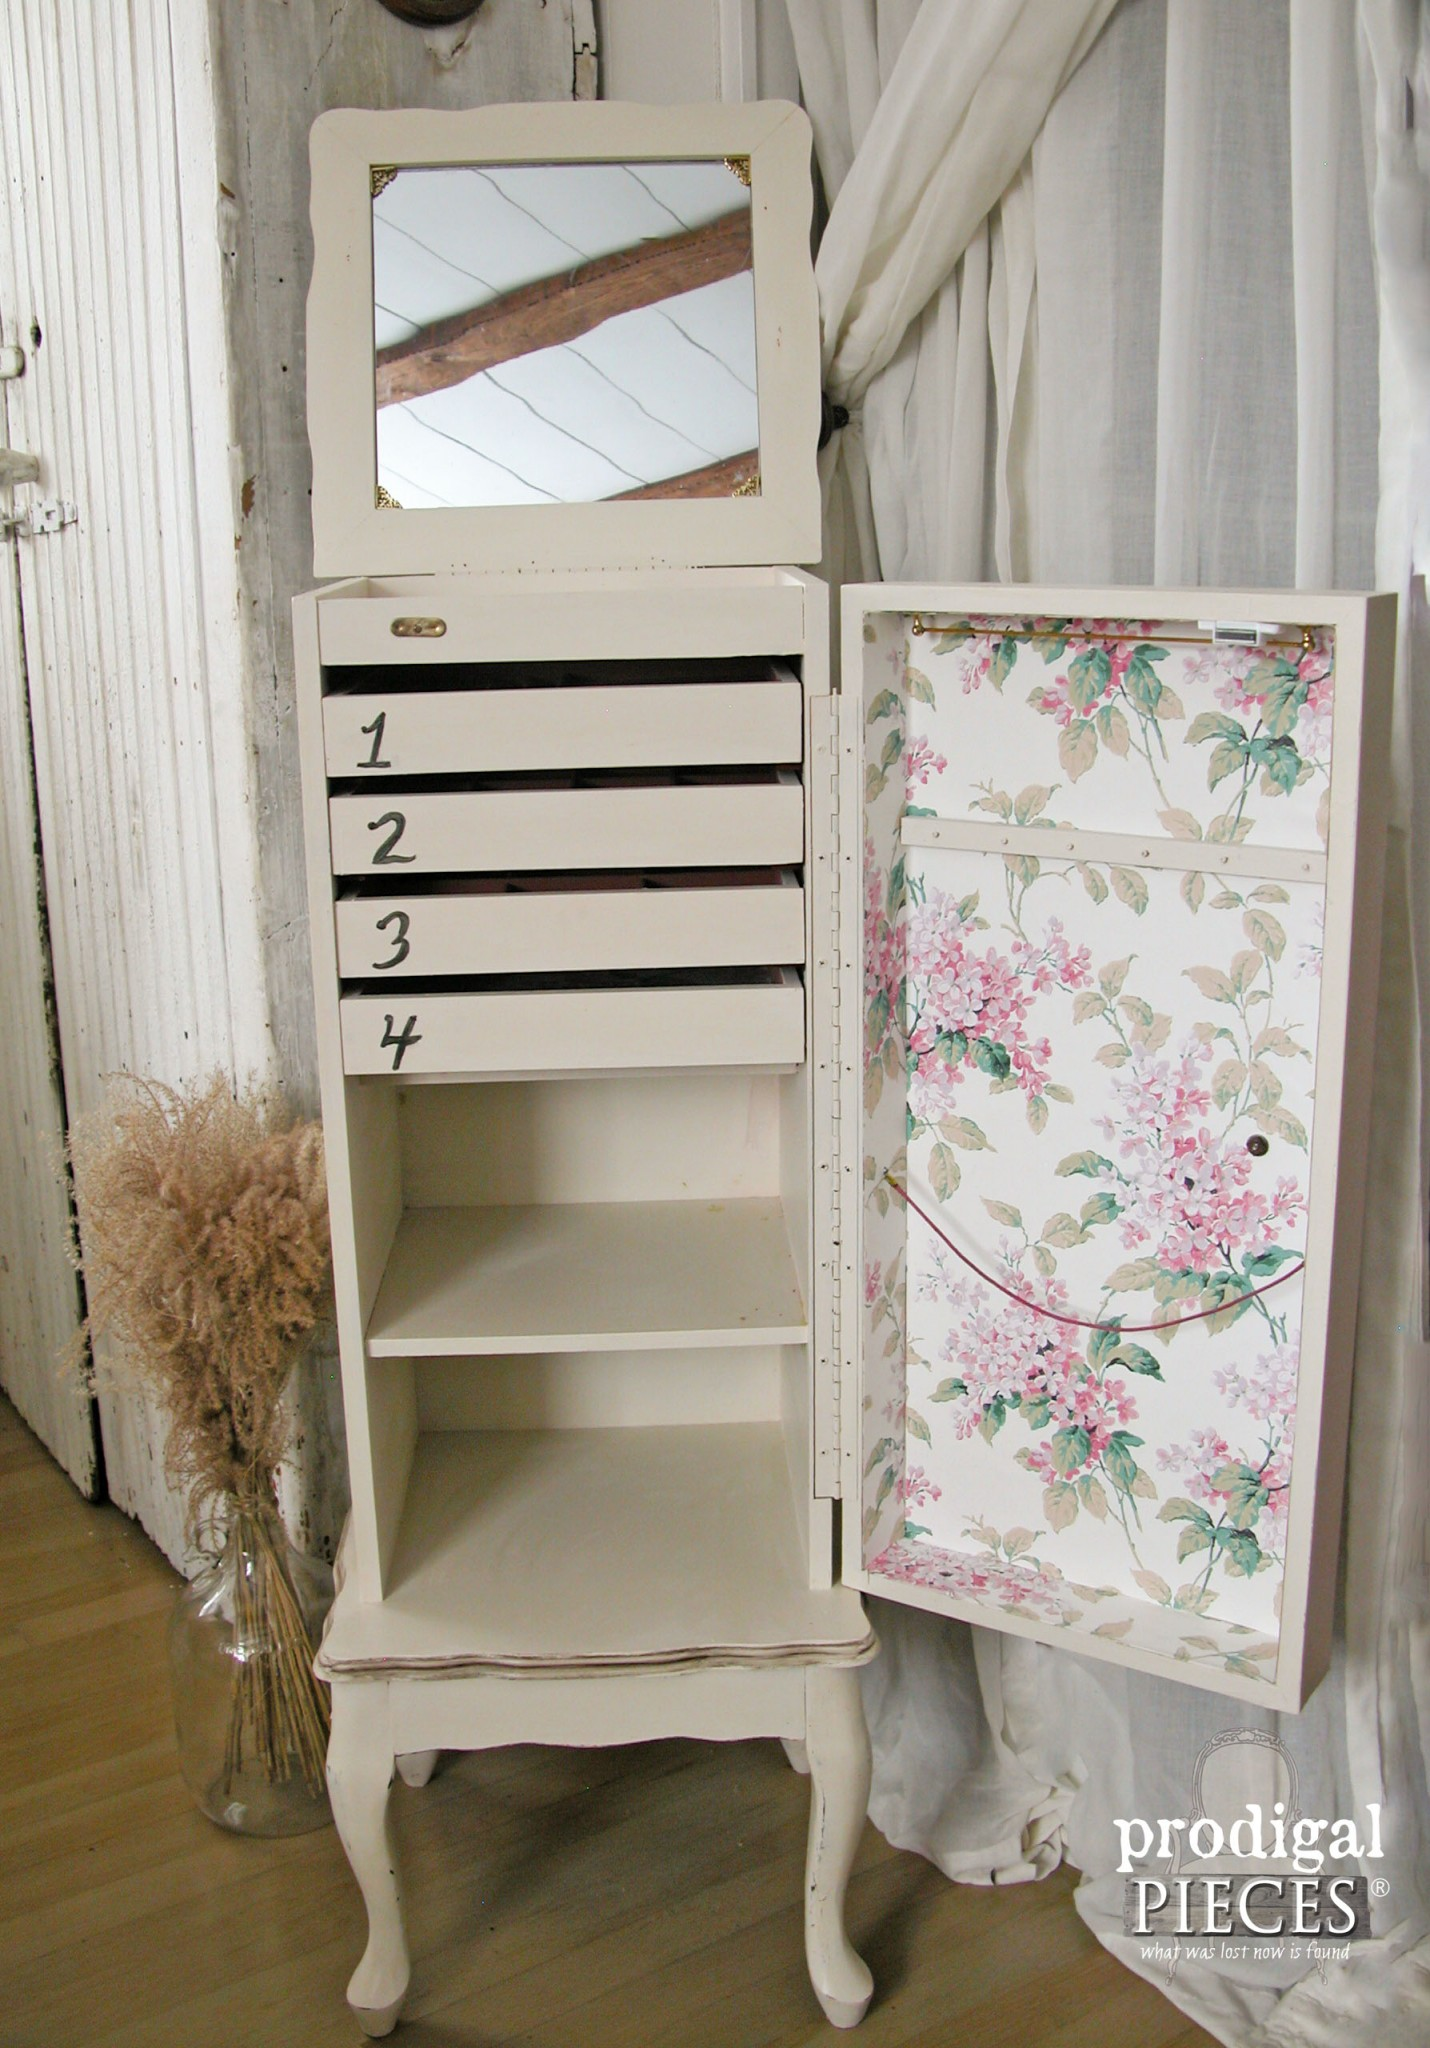 Refinished Jewelry Armoire with Wallpaper by Prodigal Pieces | www.prodigalpieces.com